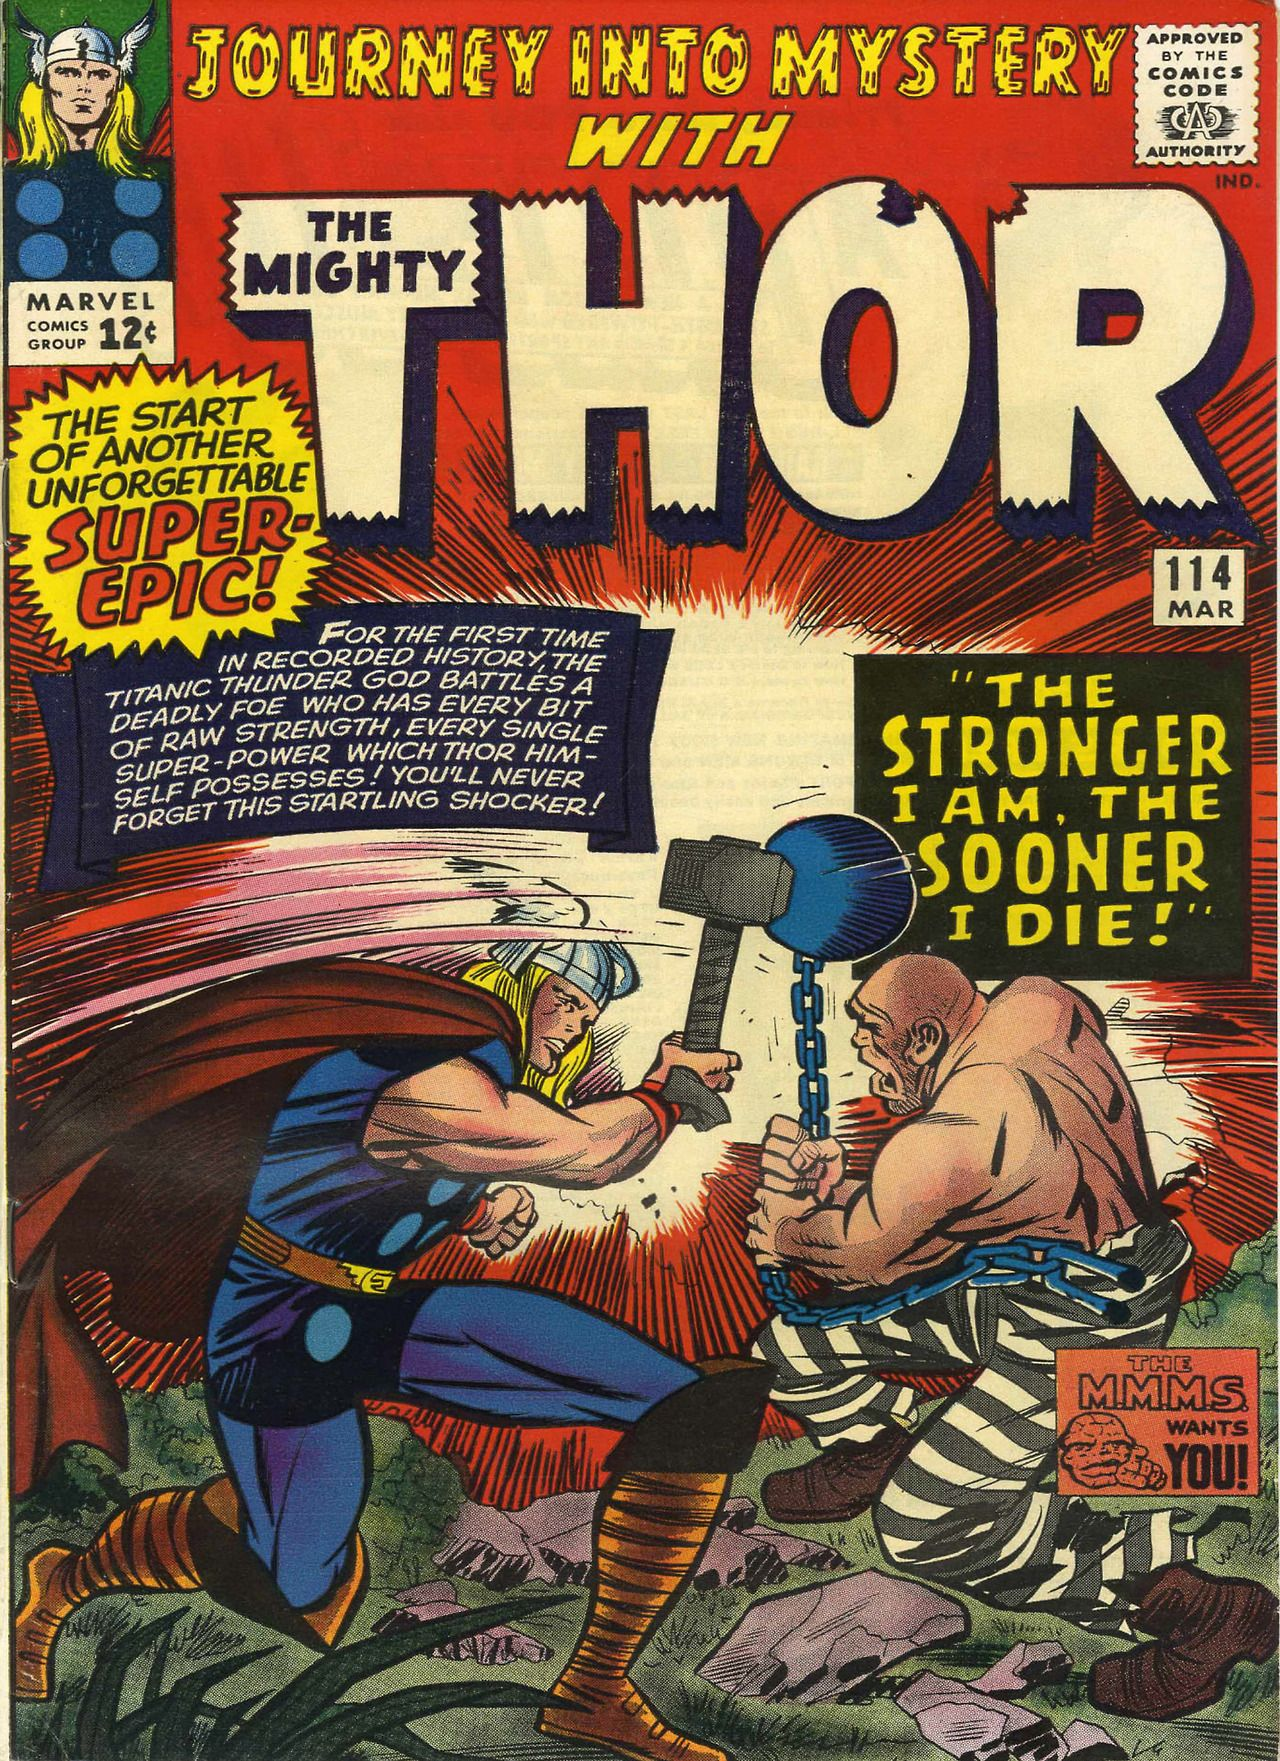 Thor vs. the Absorbing Man in Journey Into Mystery #114 - art by Jack Kirby.